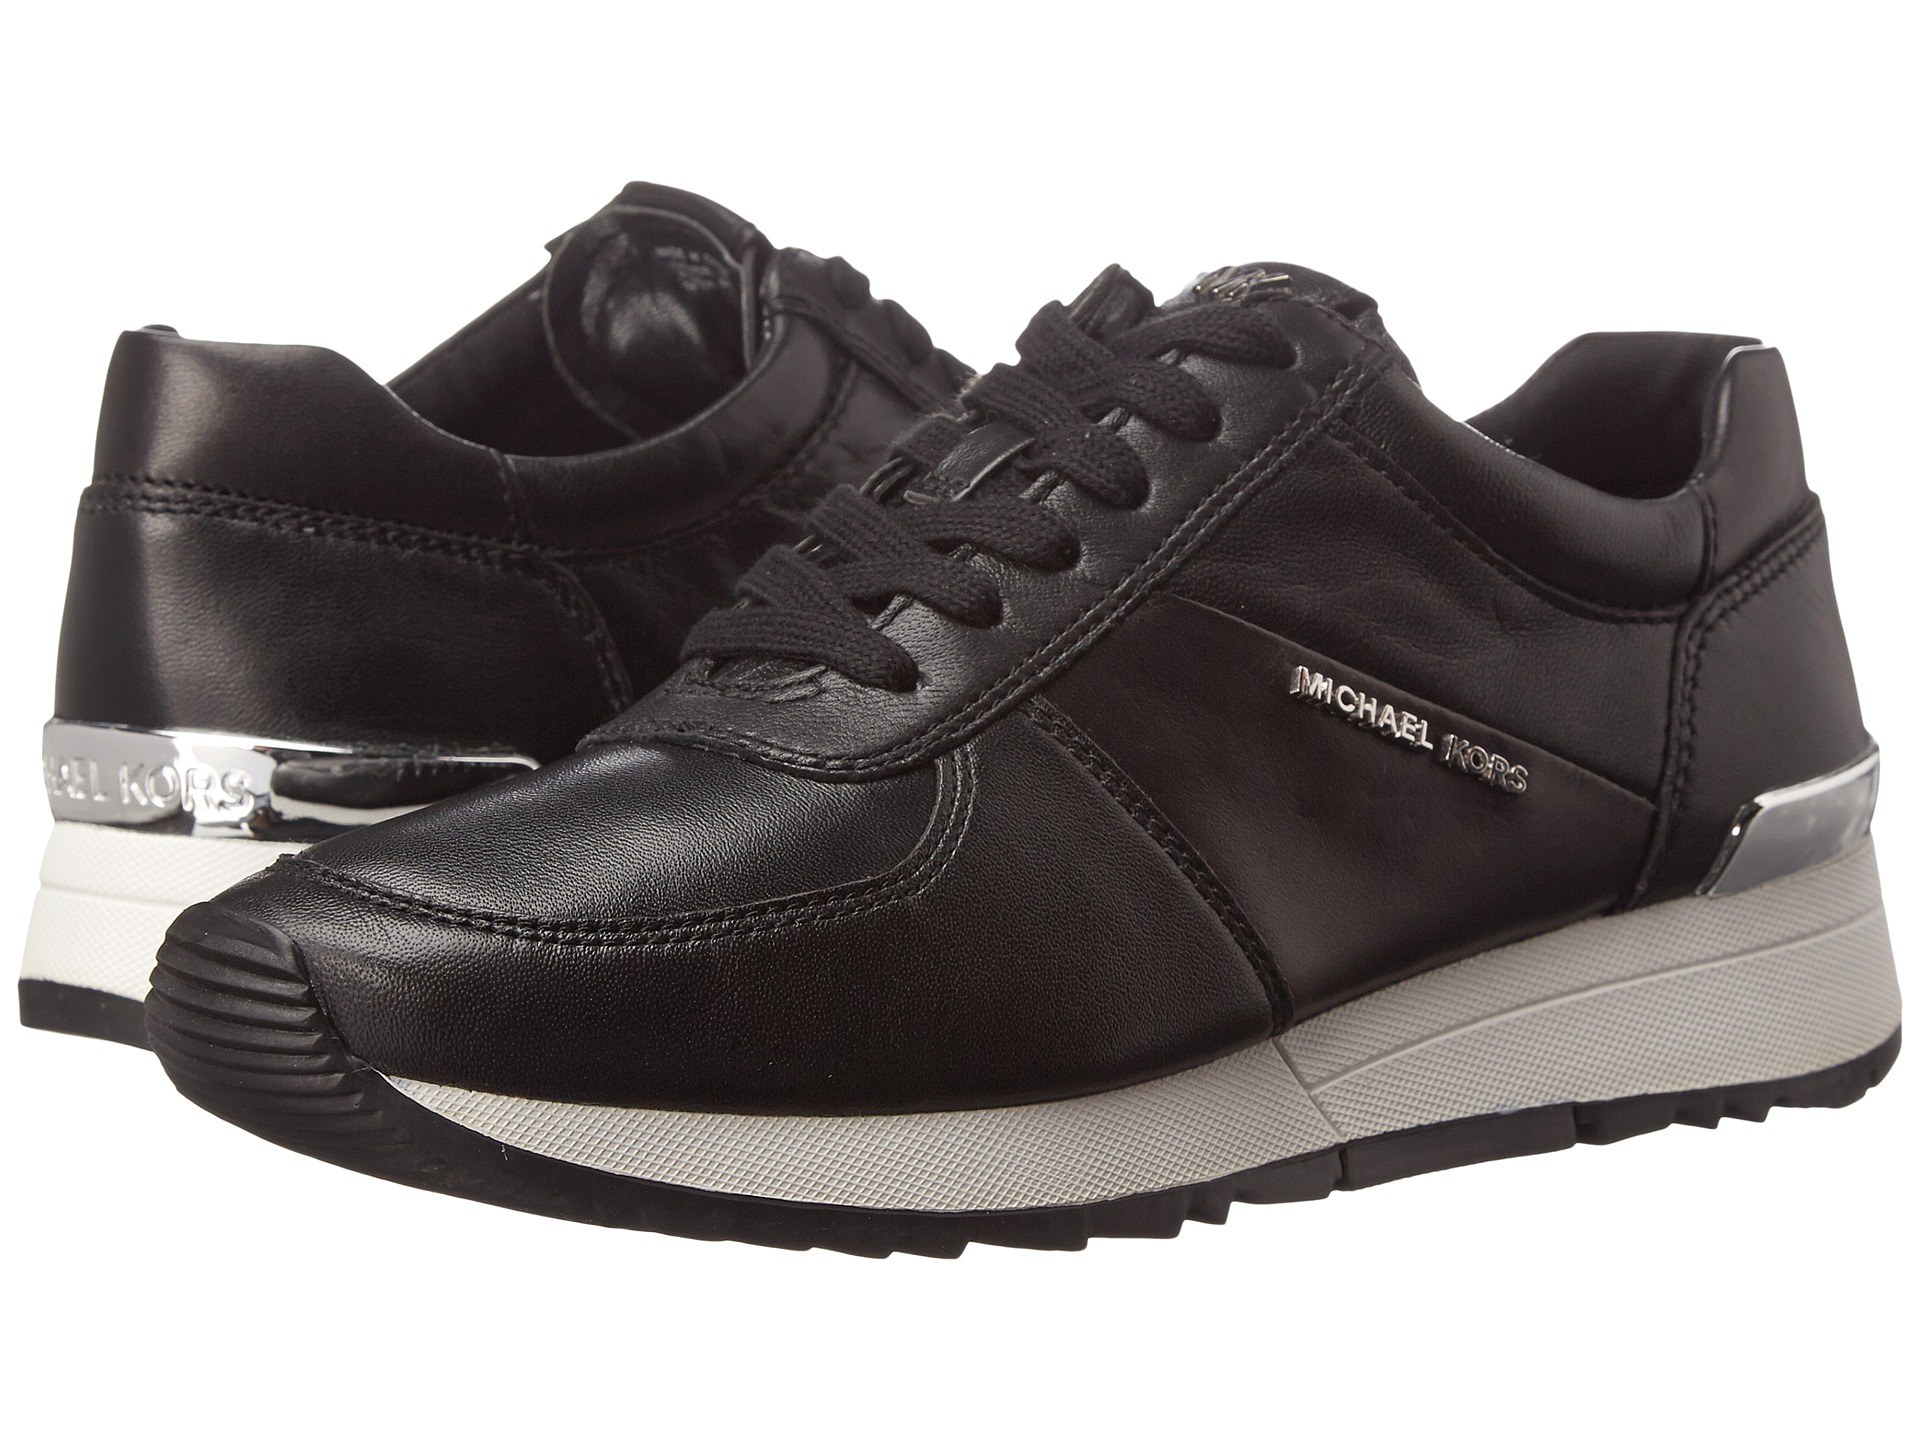 Buy mens michael kors trainers > OFF78% Discounted